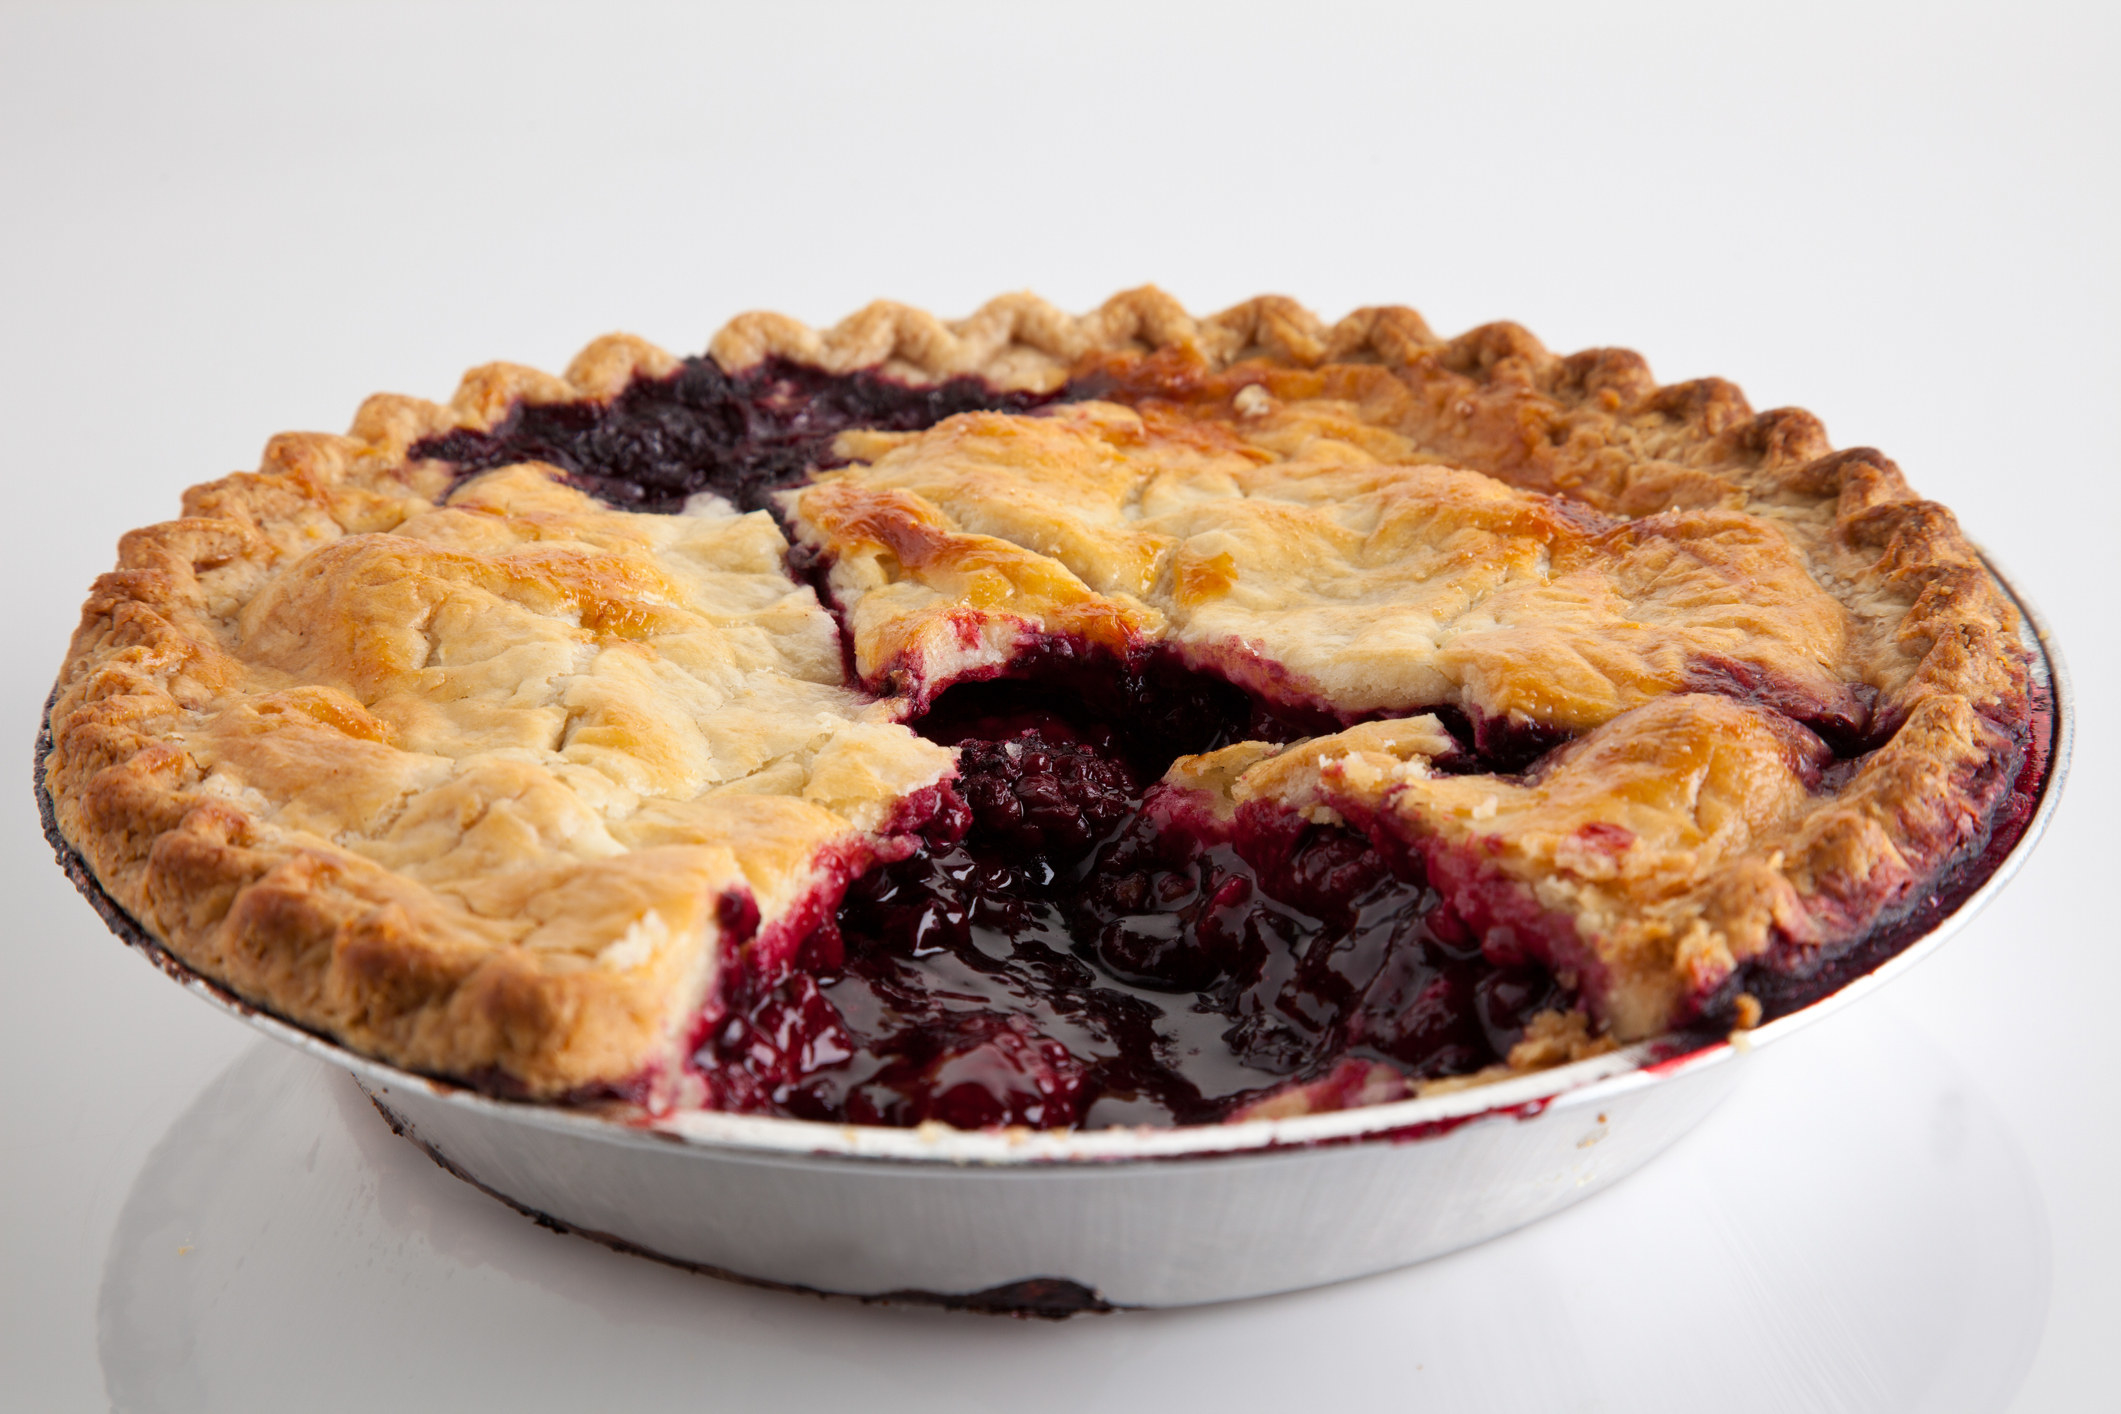 A baked marionberry pie.